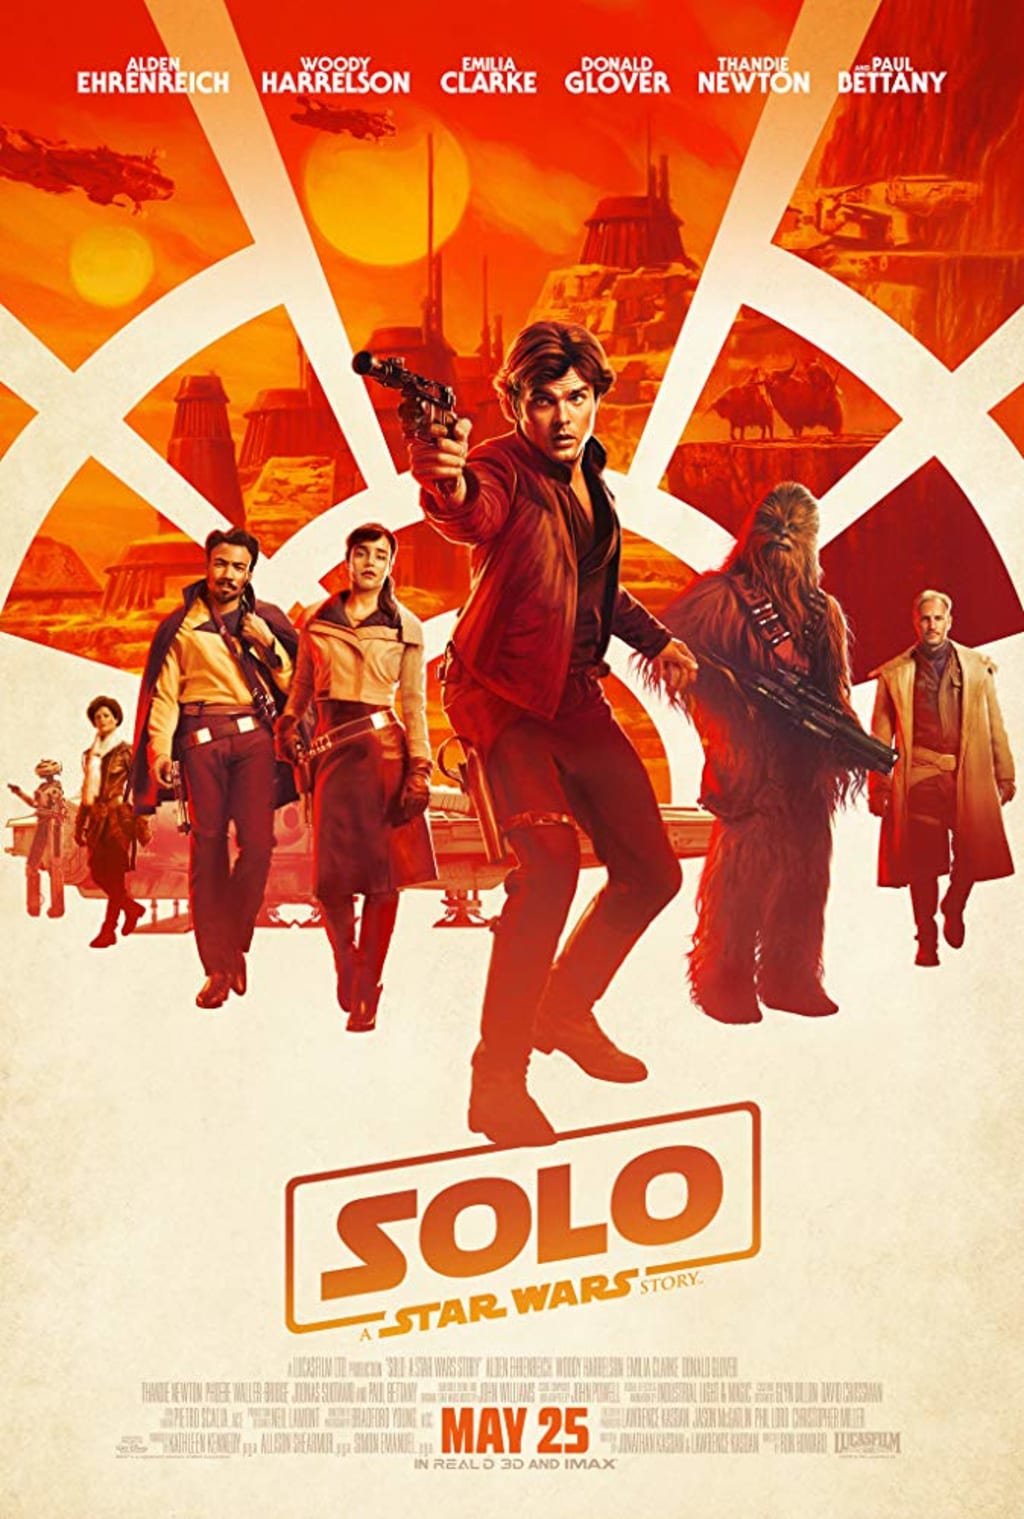 A Second Look at a Solo Story Ain't so Bad